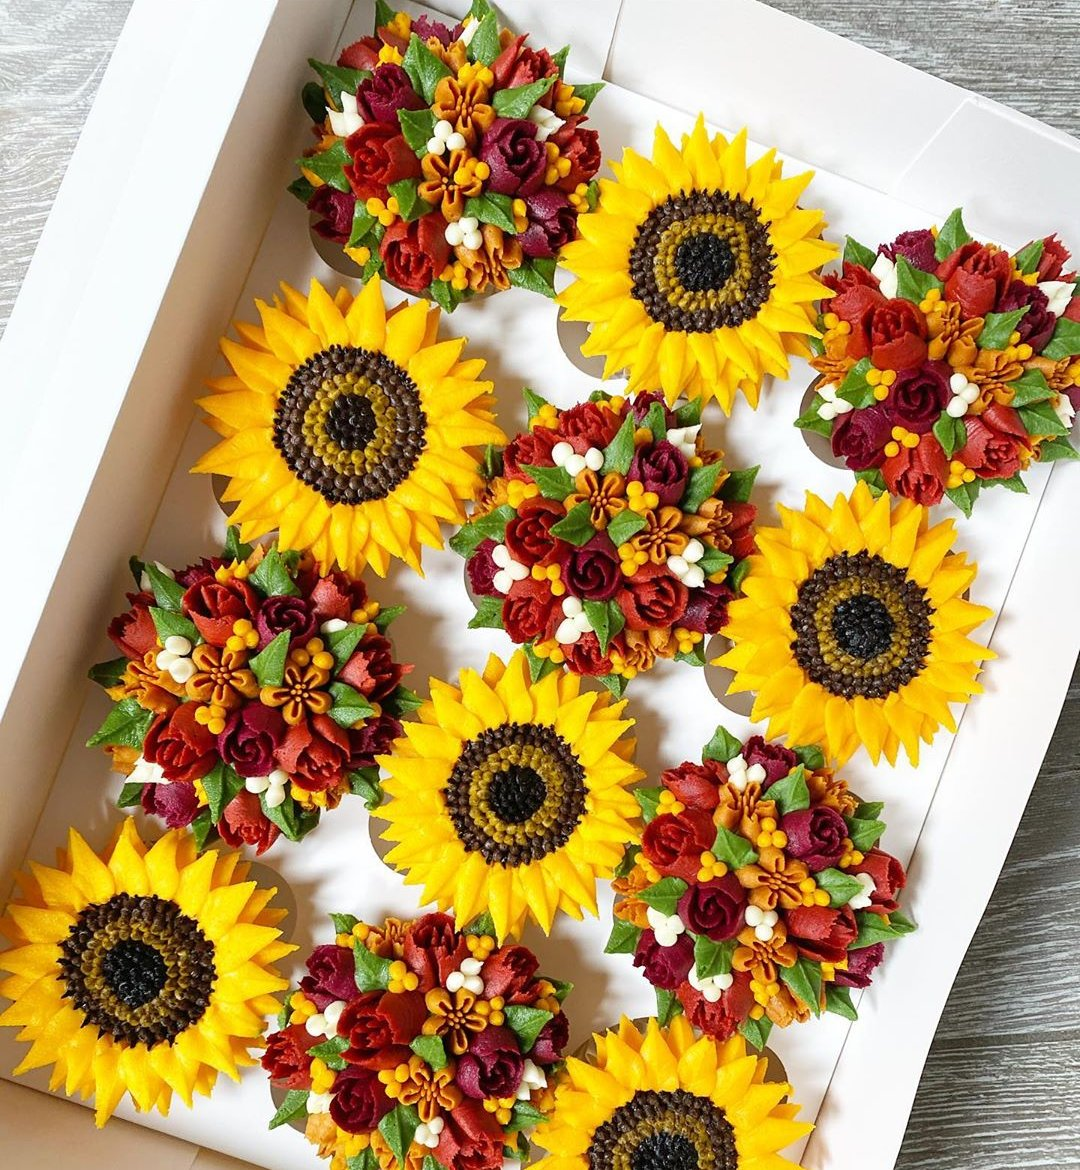 🍁SALE LIVE NOW🍁 on all main online courses. I can teach you how to make these beautiful buttercream flowers and more in my easy to follow step by step courses. Visit https://t.co/SP0DEEe2wR 🍁🍂 #onlinelearning #cakedecorating #localbusiness https://t.co/YV34Q2v2fB